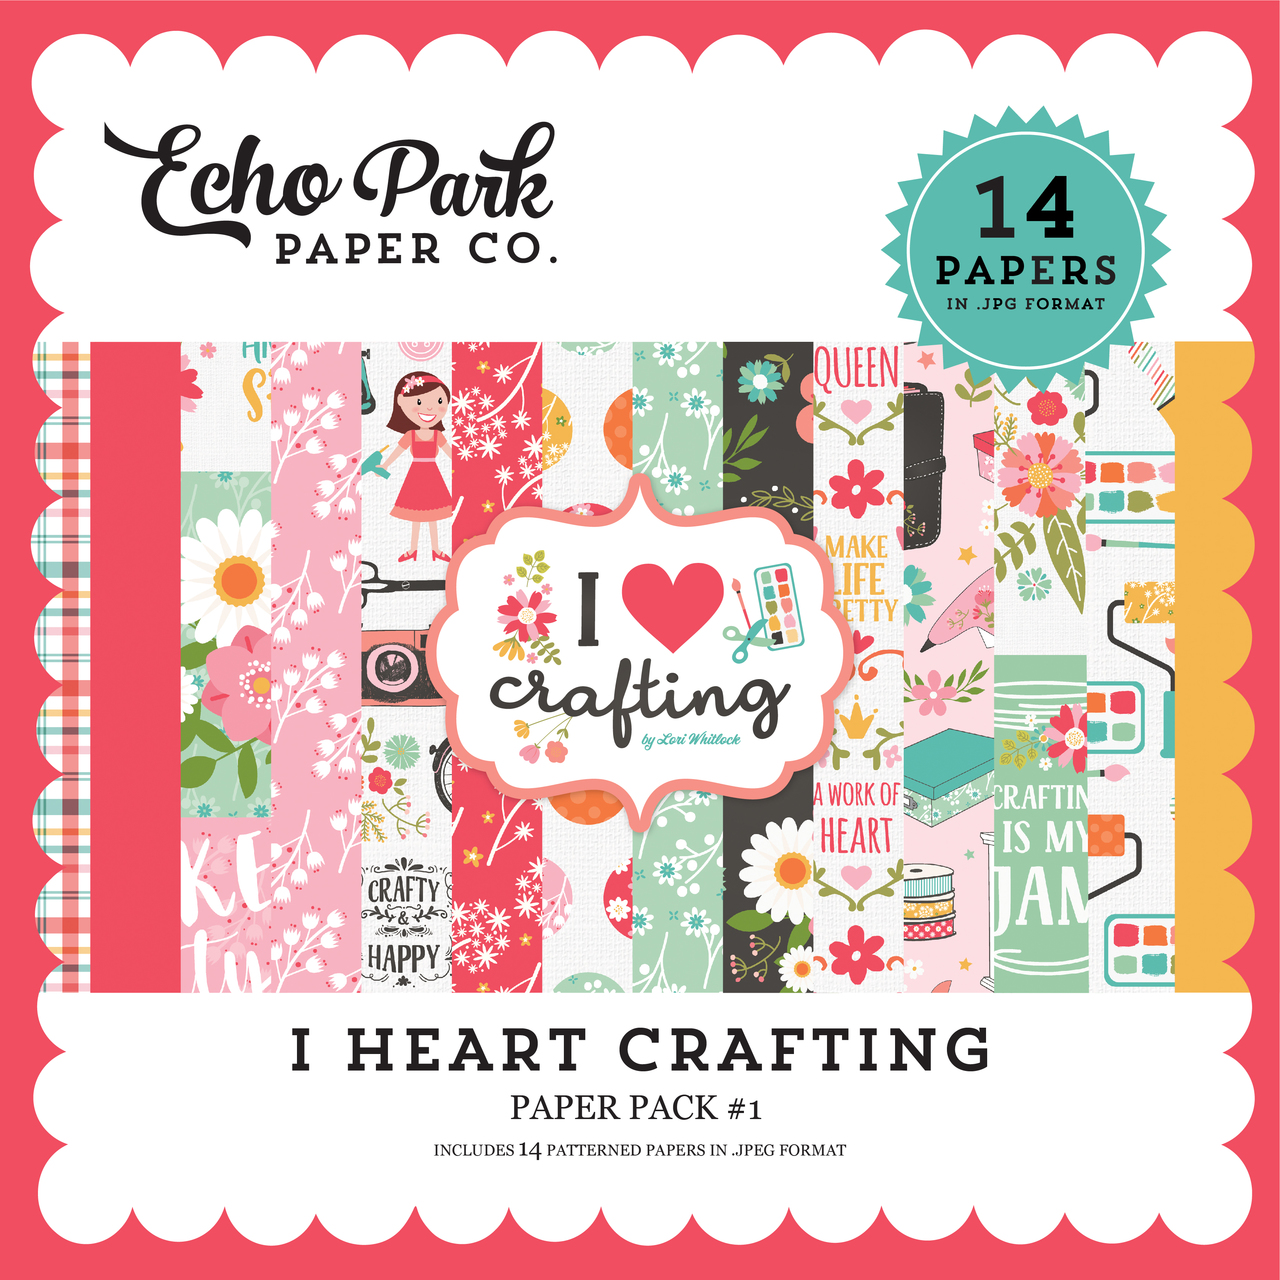 I Heart Crafting Paper Pack #1